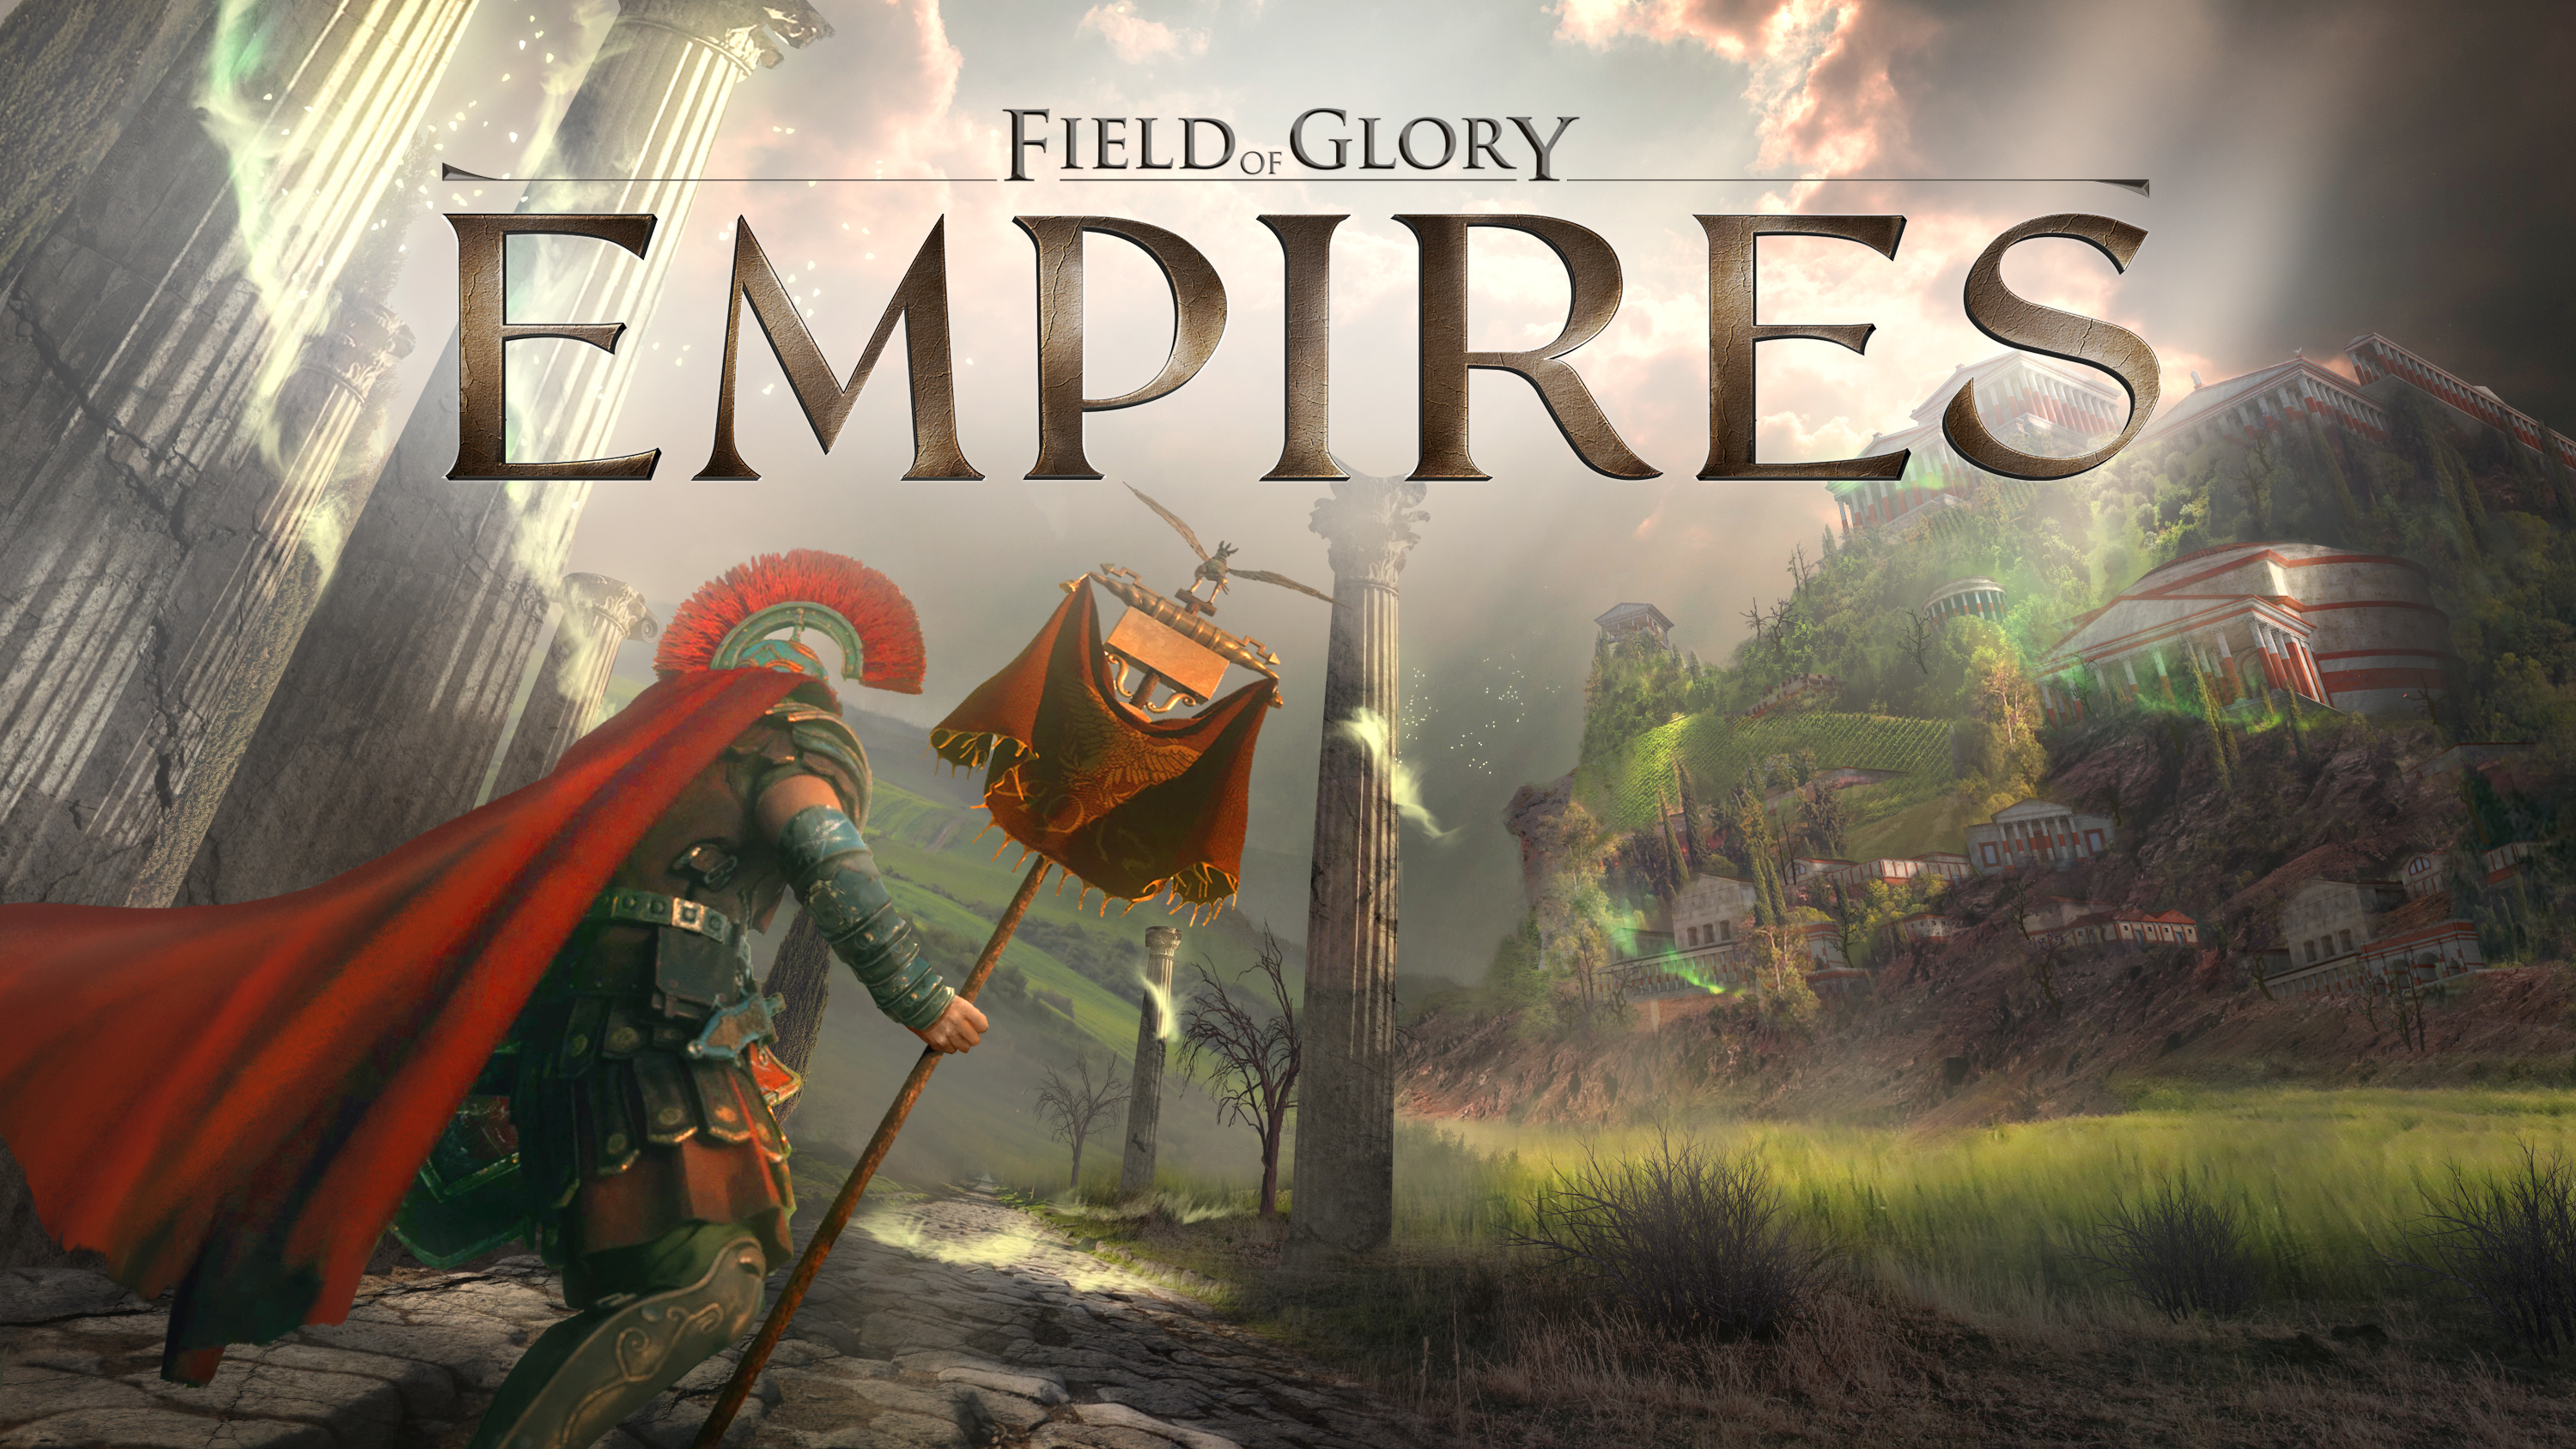 Review: Field of Glory: Empires